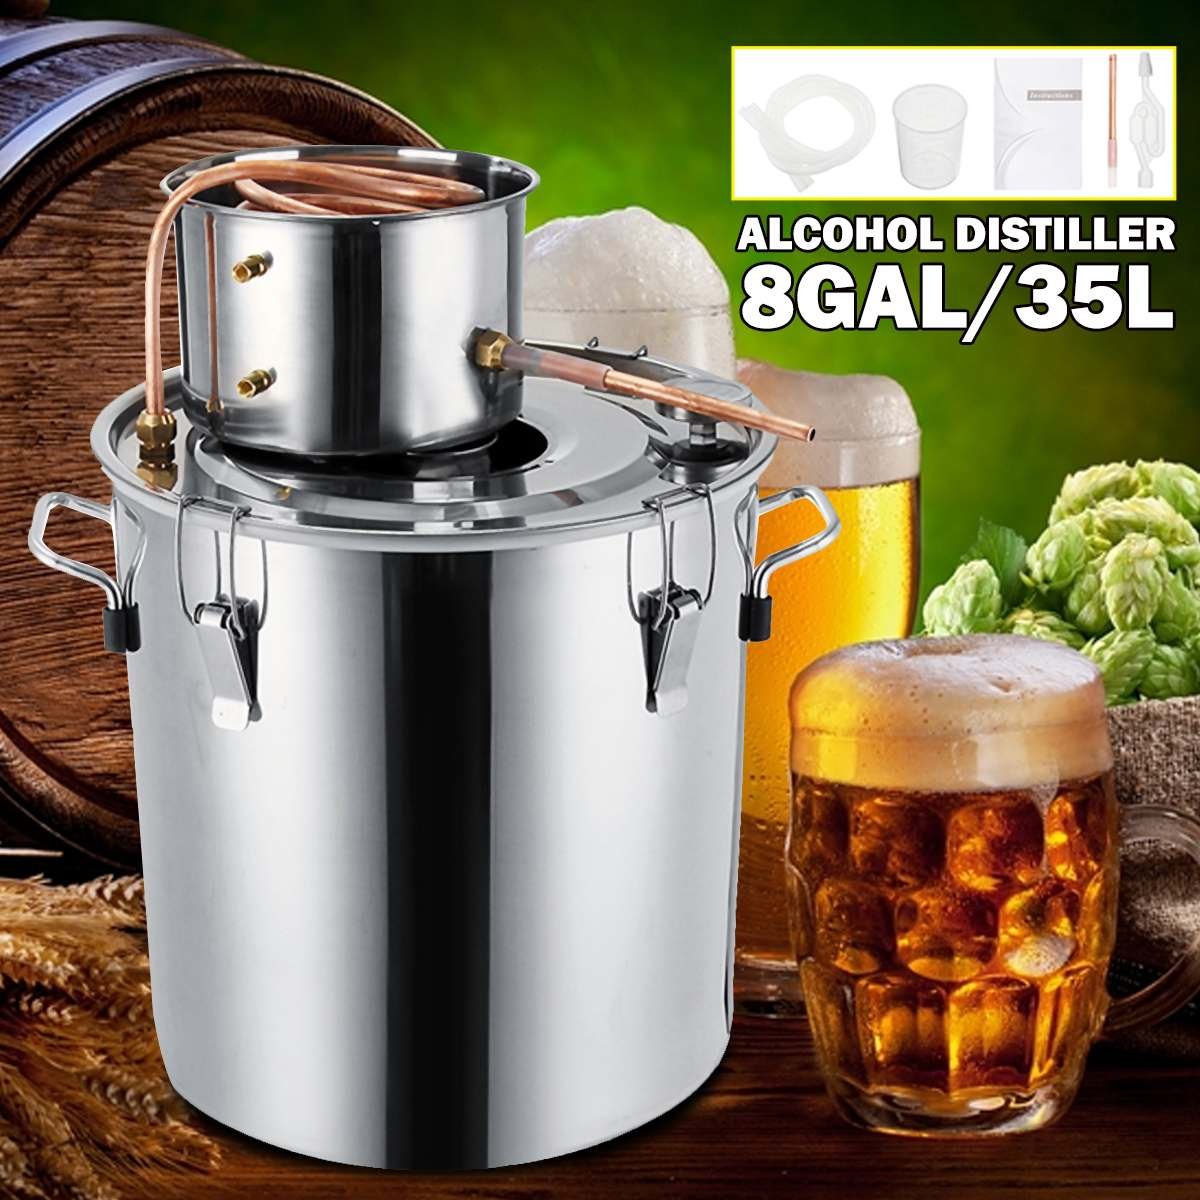 Efficient 8GAL / 35L Distiller Moonshine Alcohol Distiller Stainless Copper DIY Home Water Wine Essential Oil Brewing Kit